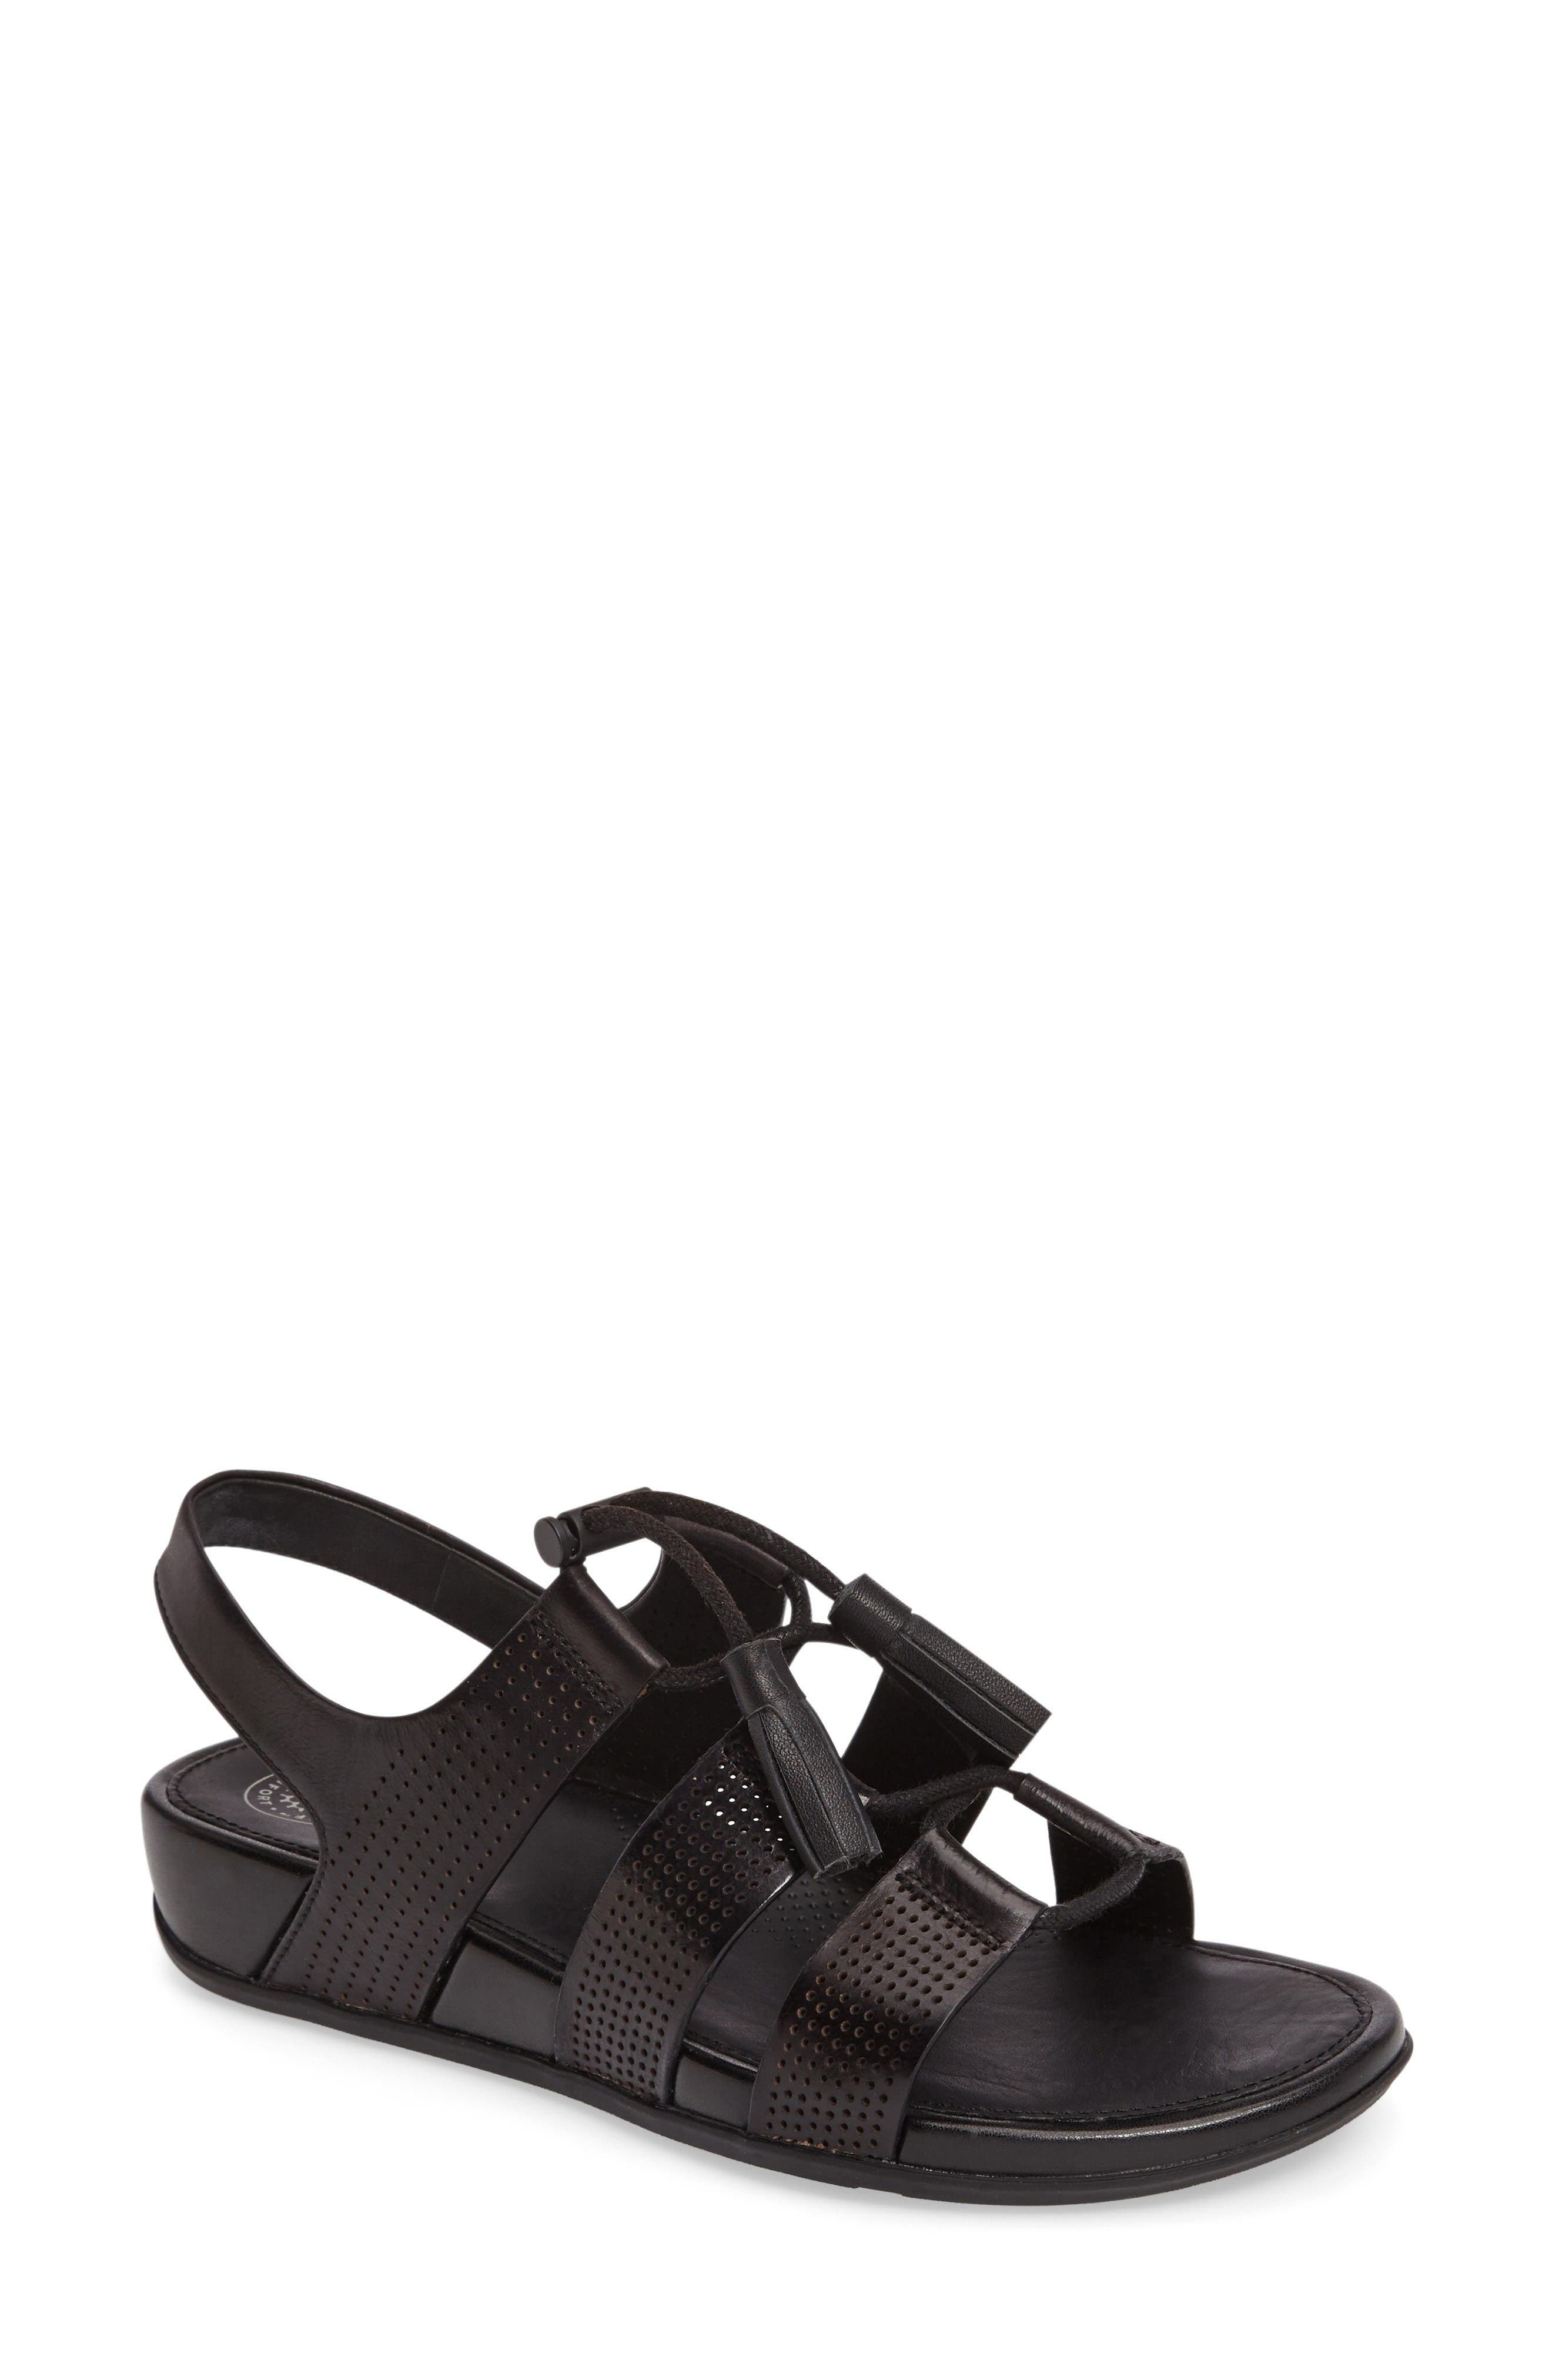 FITFLOP Gladdie Lace-Up Sandal